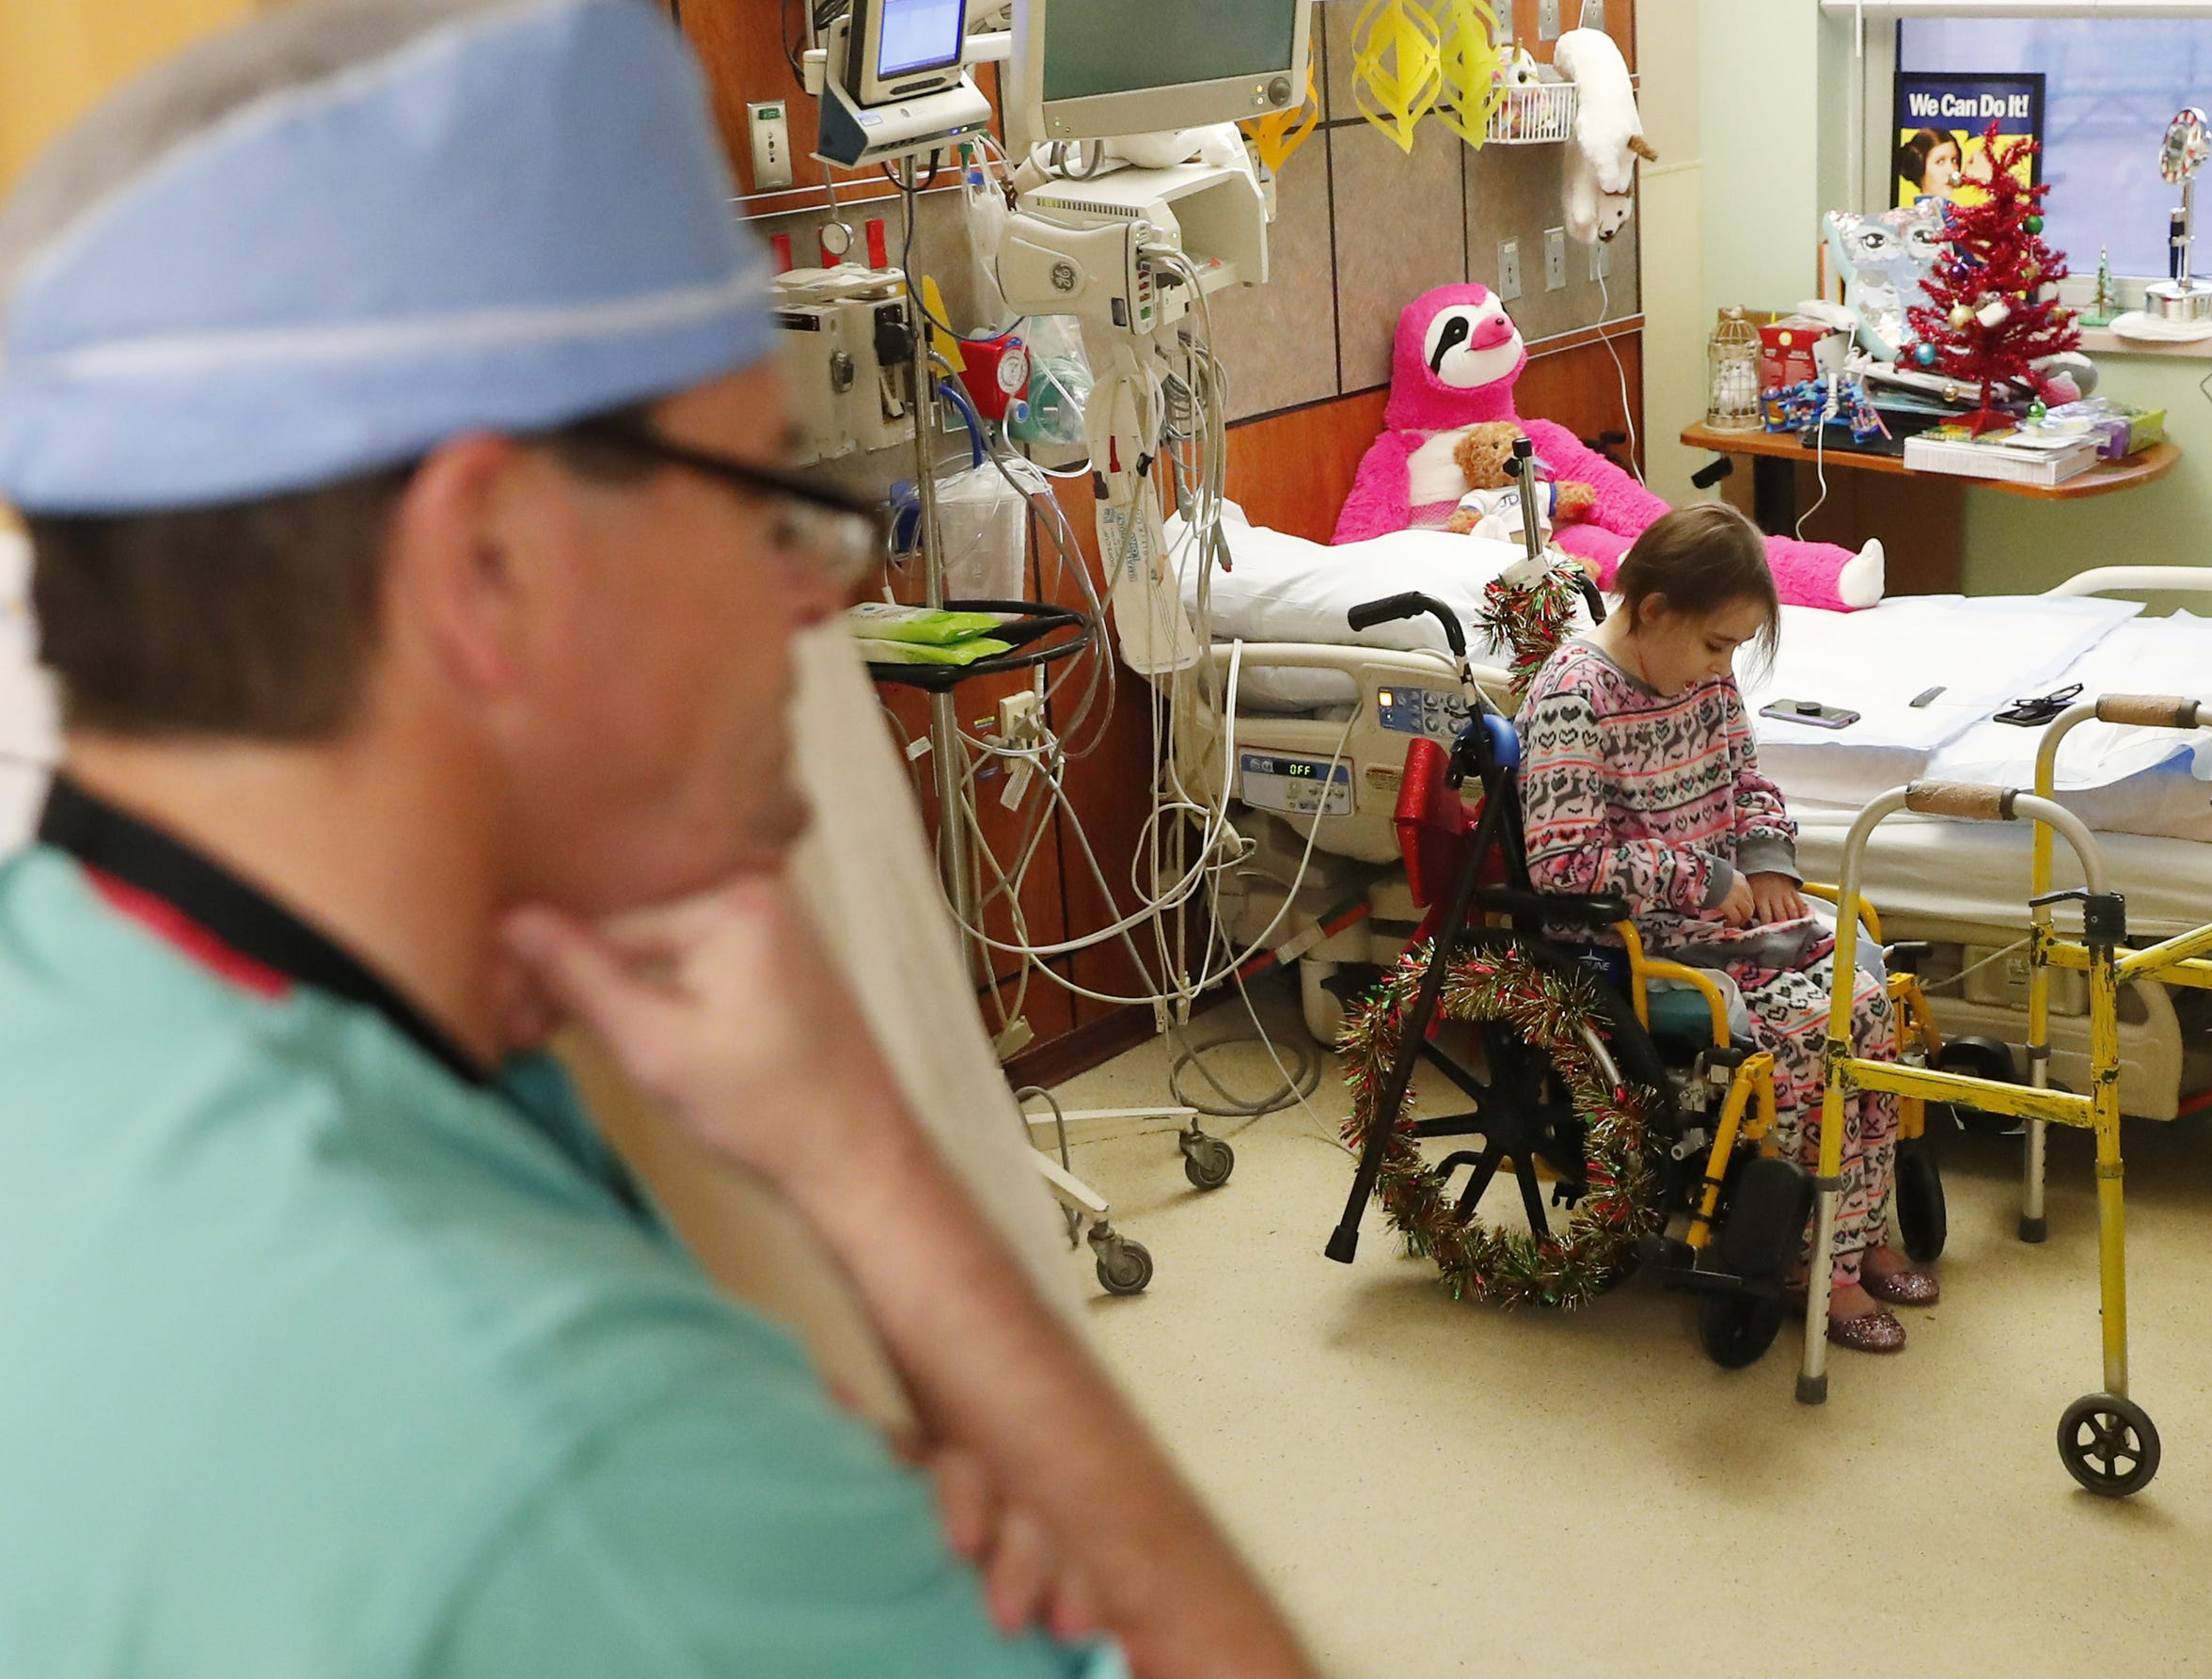 Dr. Kevin Foster talks with Isabella McCune in her room at the Arizona Burn Center in Phoenix Dec. 12, 2018. The 9-year-old was severely burned in a home accident in March.